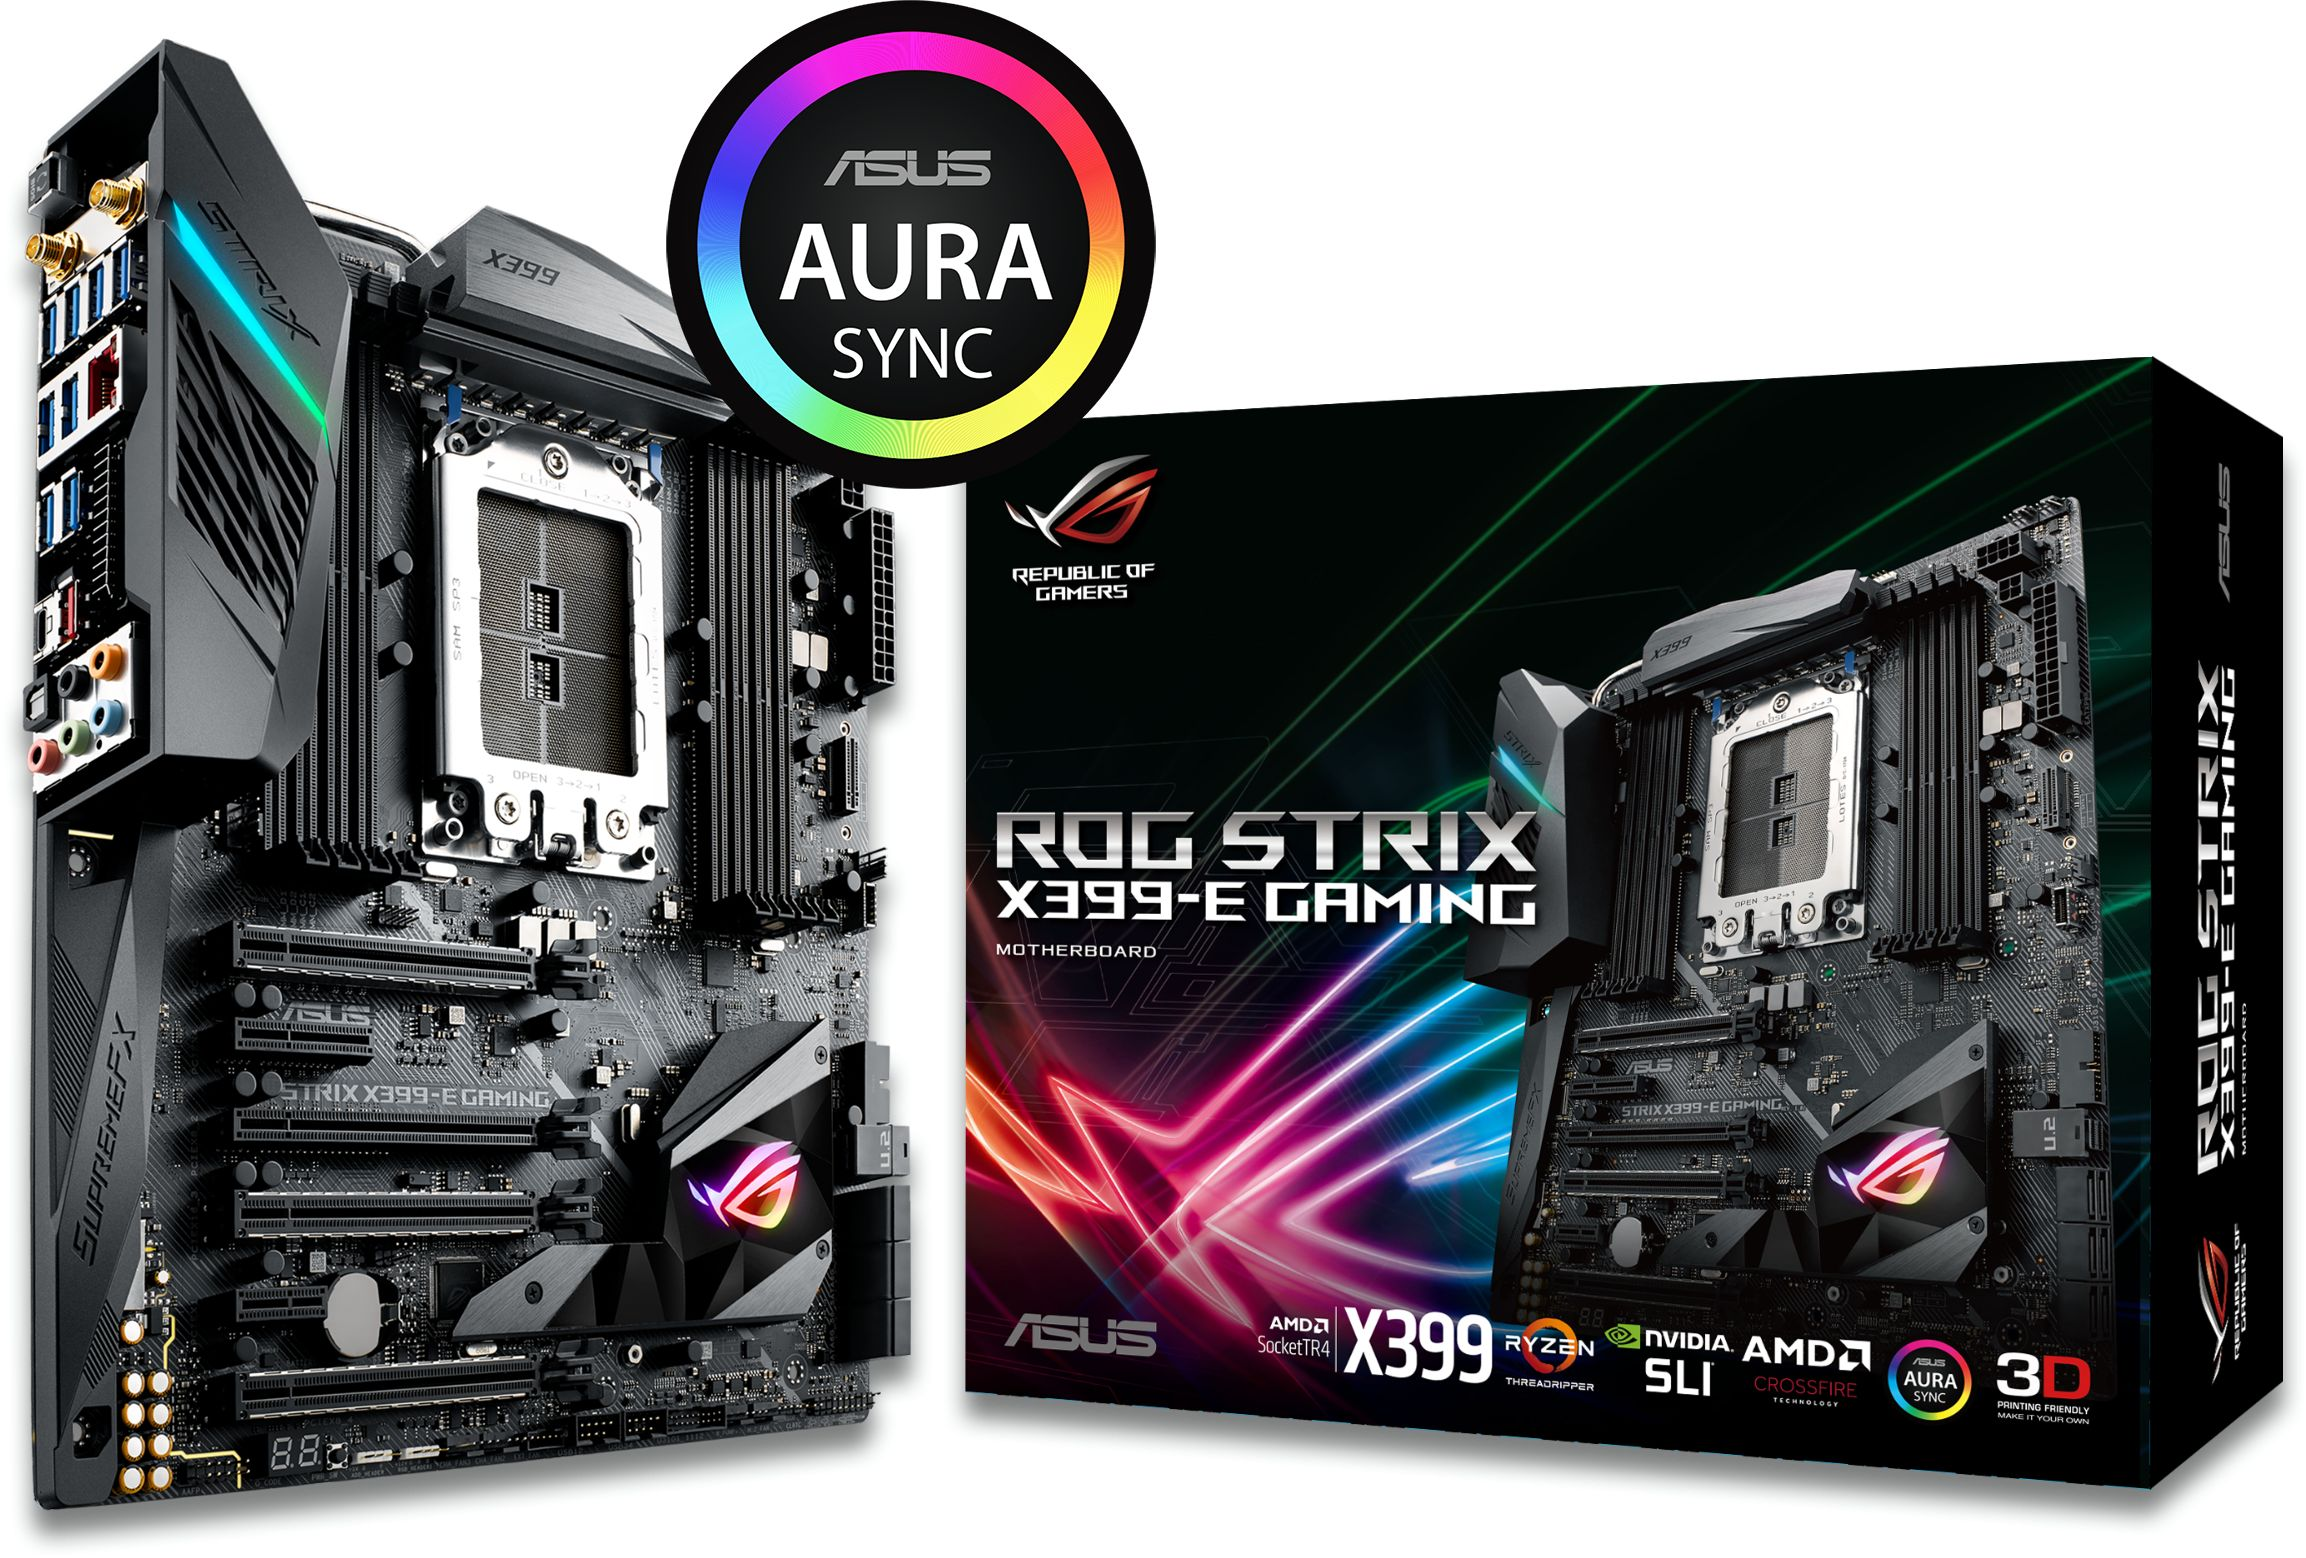 ROG STRIX X399-E GAMING Wi-Fi AMD SocketTR4 EATX Motherboard